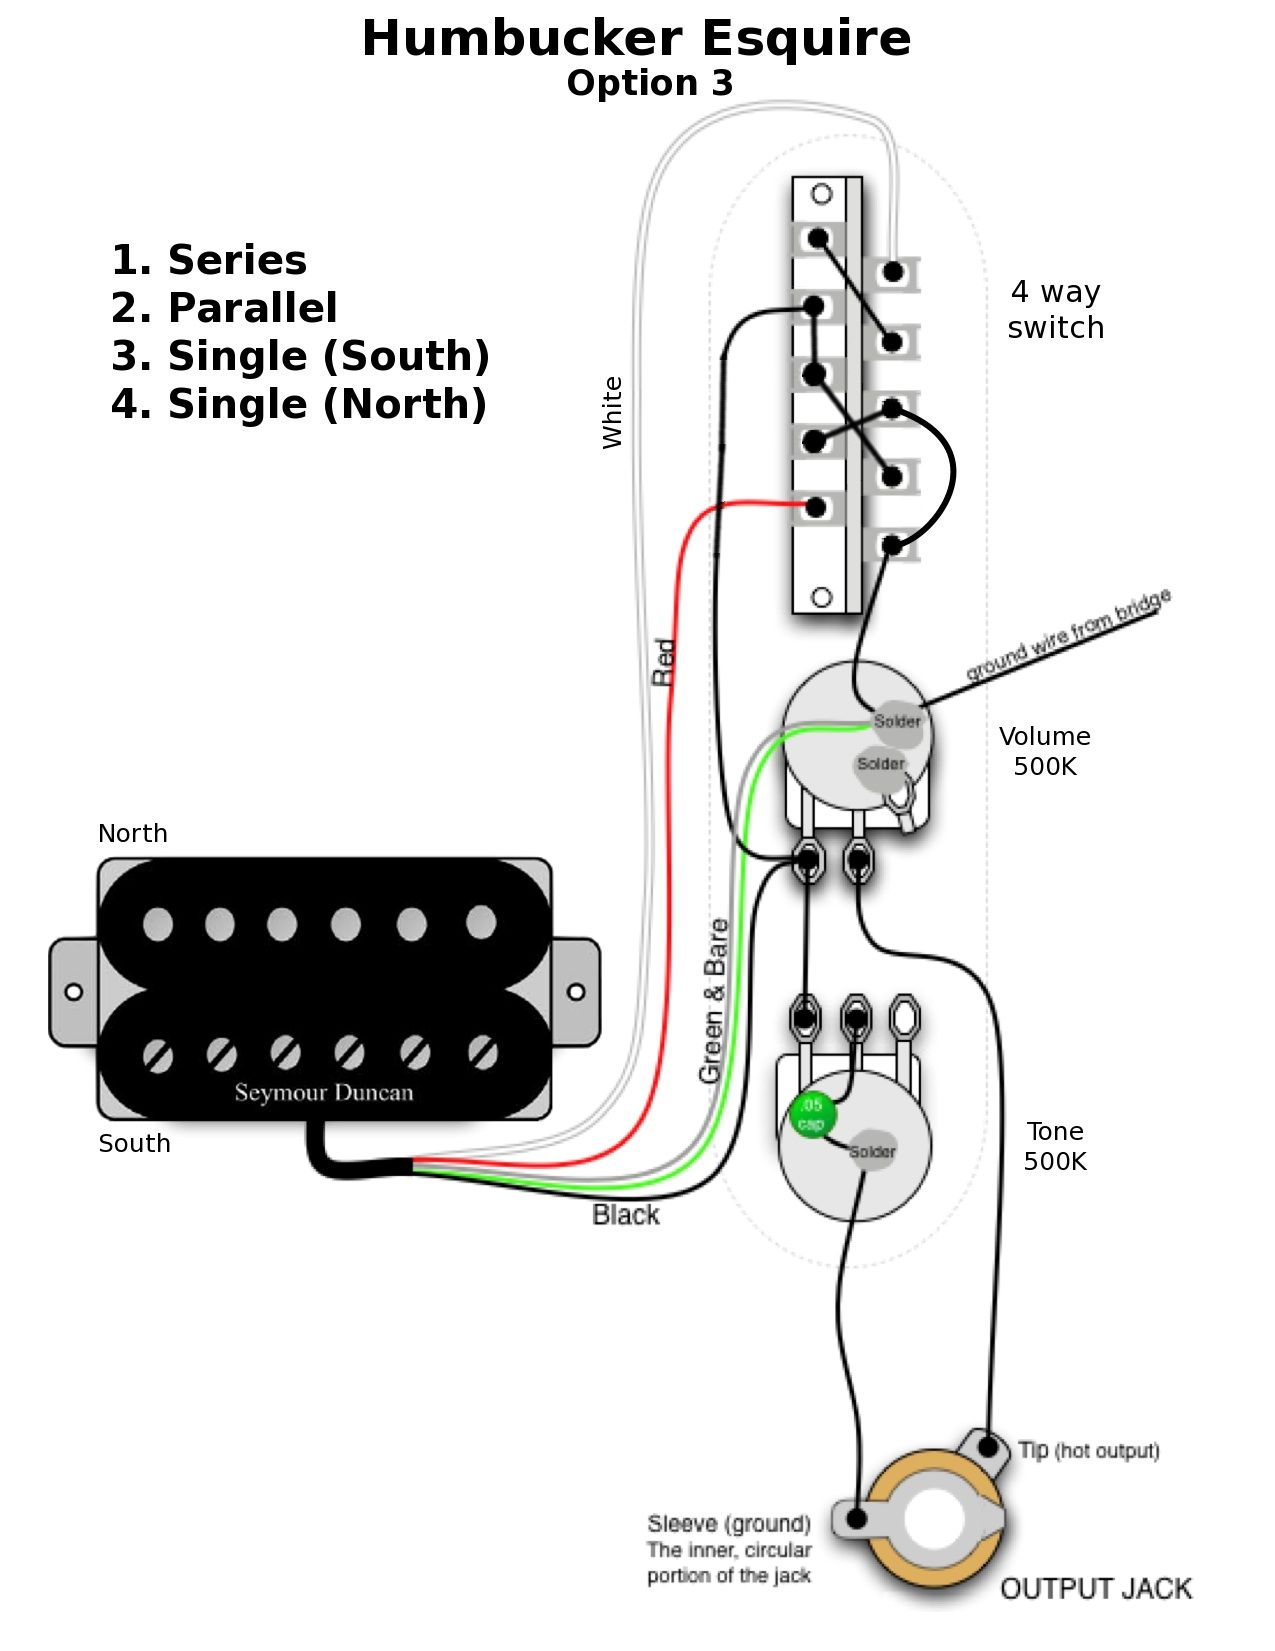 z243s esquire_hb_option_3 guitar wiring diagrams 1 hum 2 single guitar discover your fender esquire wiring diagram at gsmx.co